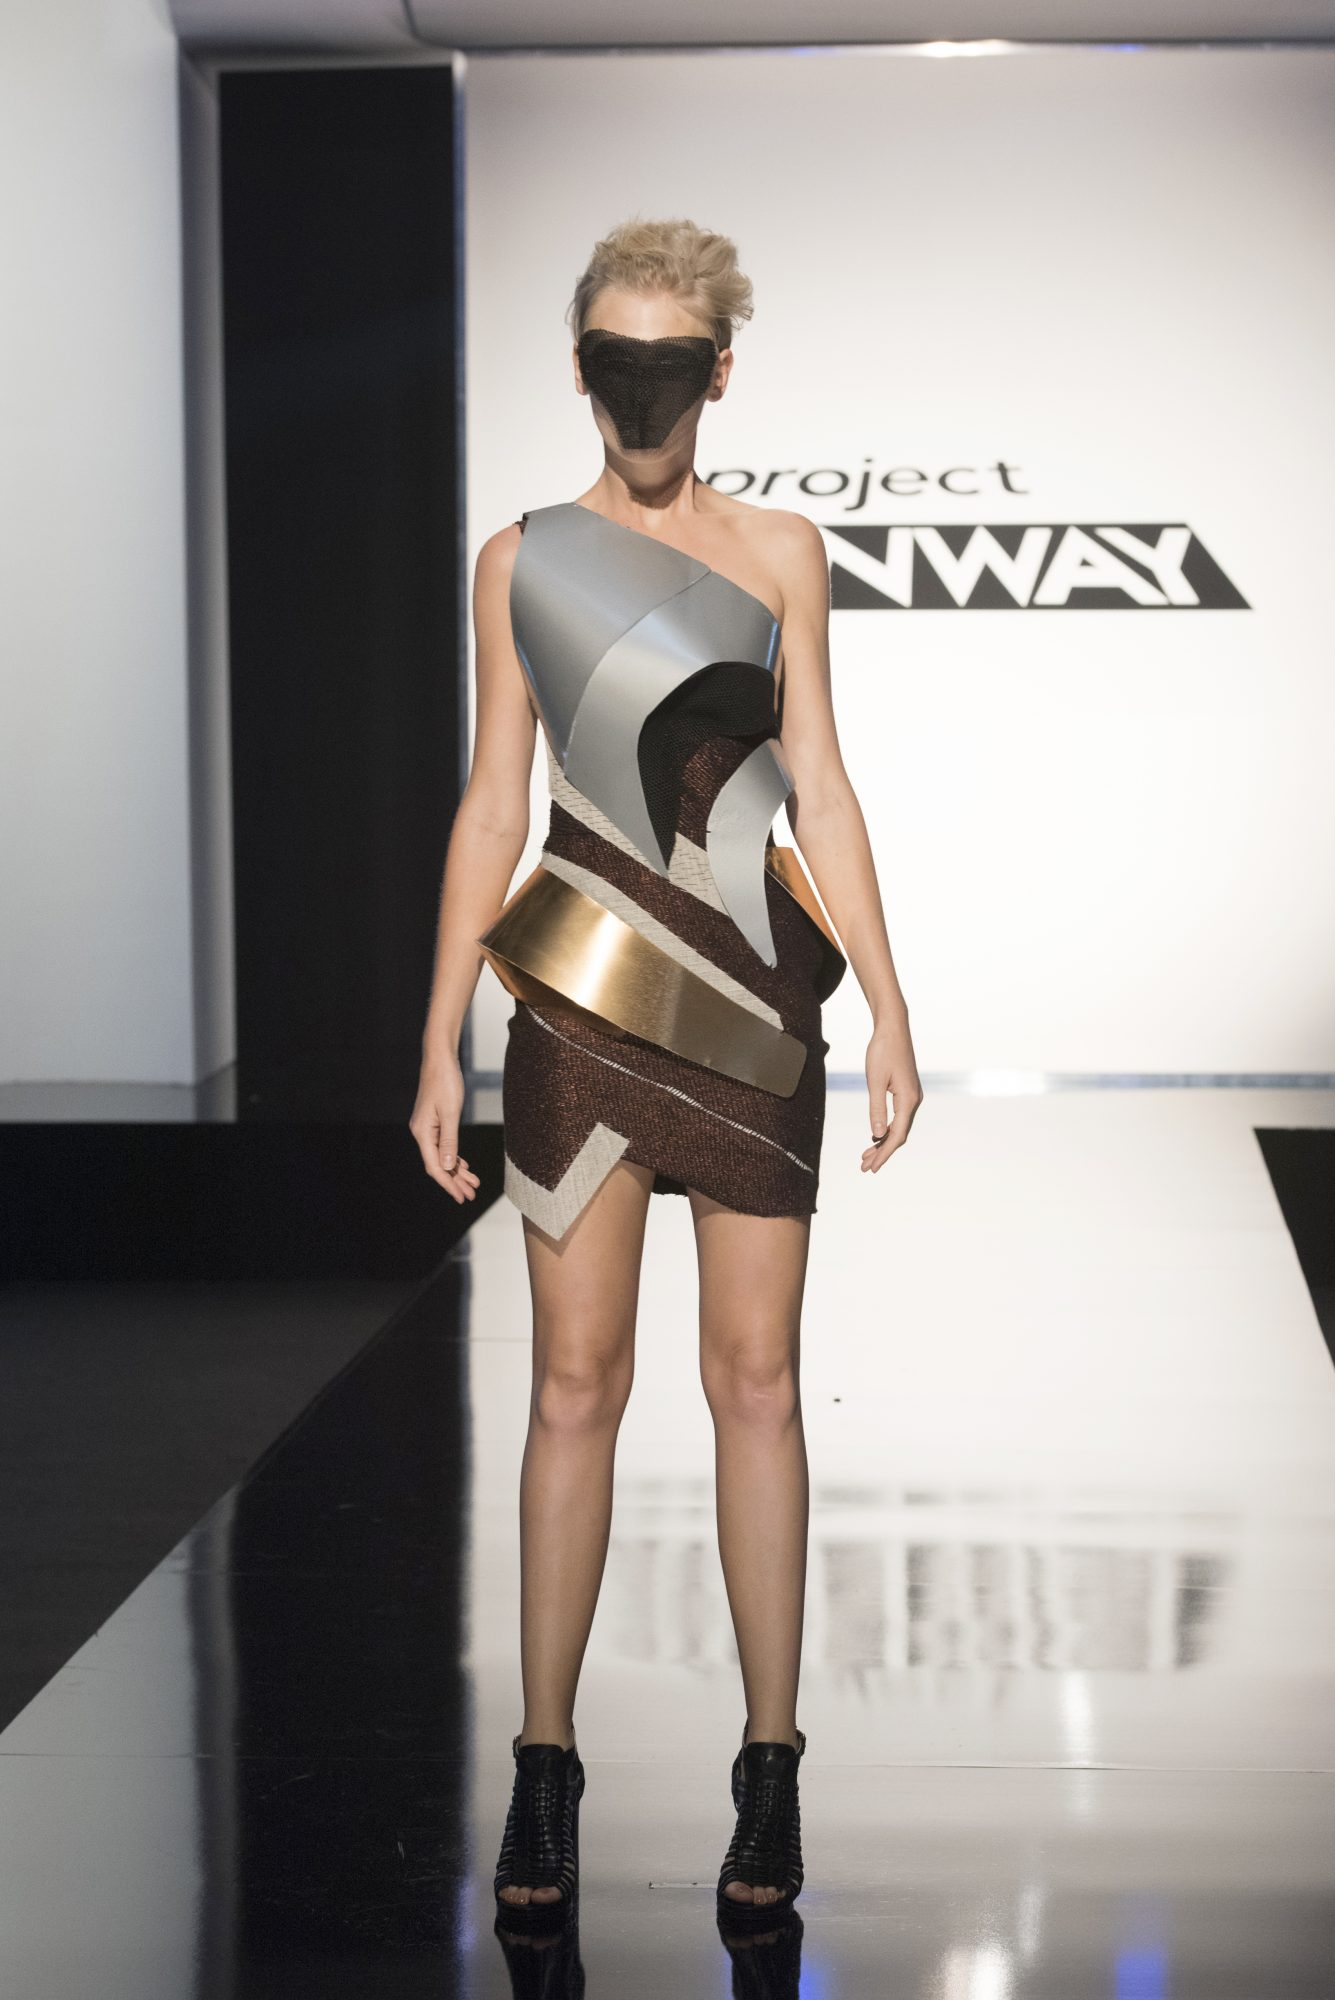 Project Runway season 15, episode 11, Roberi look